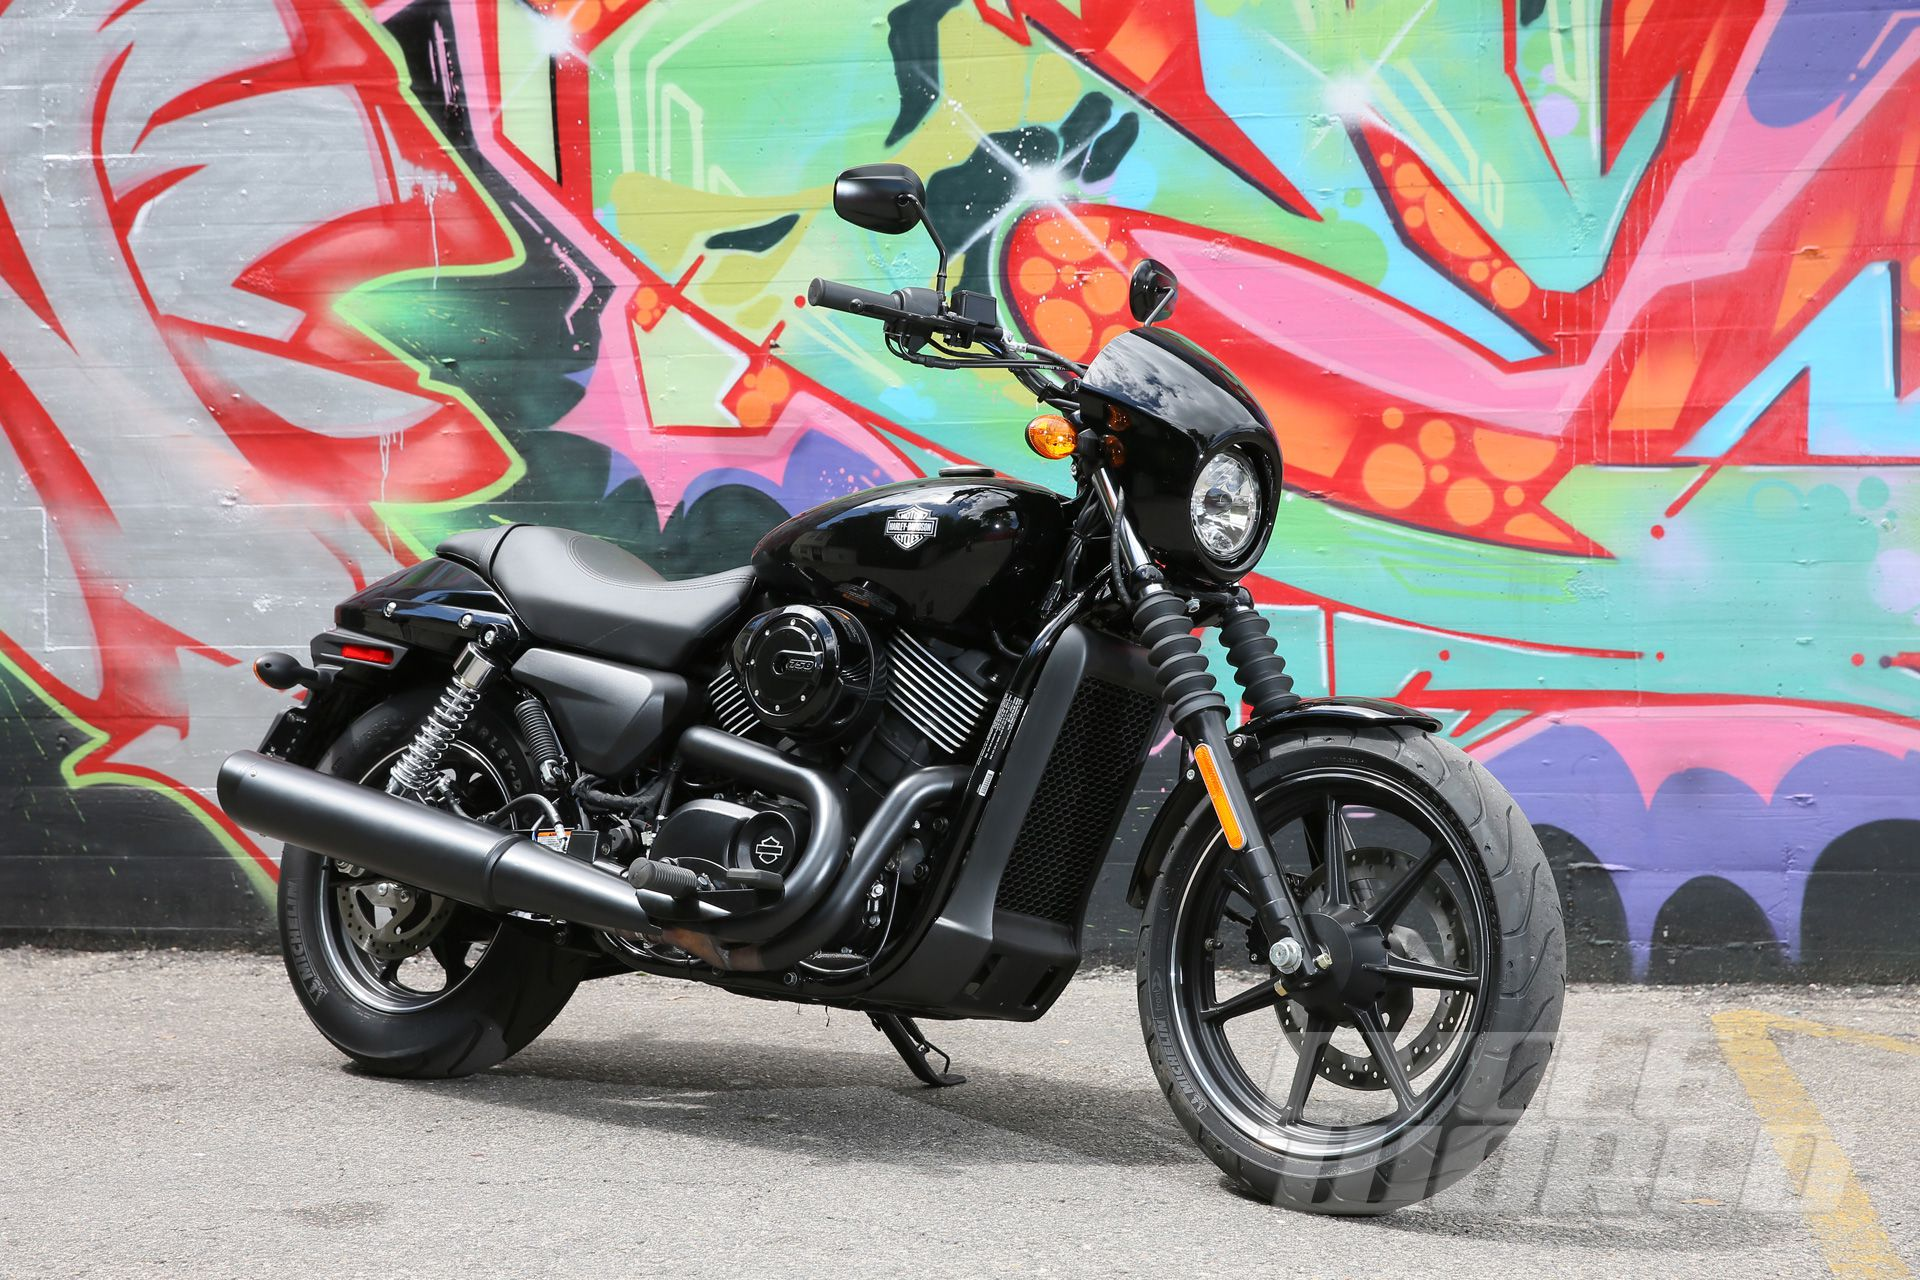 Harley-Davidson Street 750- Riding Impression Cruiser Review- Photos on 2015 harley transmission, 2015 harley engine, 2015 harley fuel tank, 2015 harley seats, 2015 harley accessories, 2015 harley fuel pump, 2015 harley radio, 2015 harley wheels, 2015 harley ignition, 2015 harley parts catalog, 2015 harley exhaust,